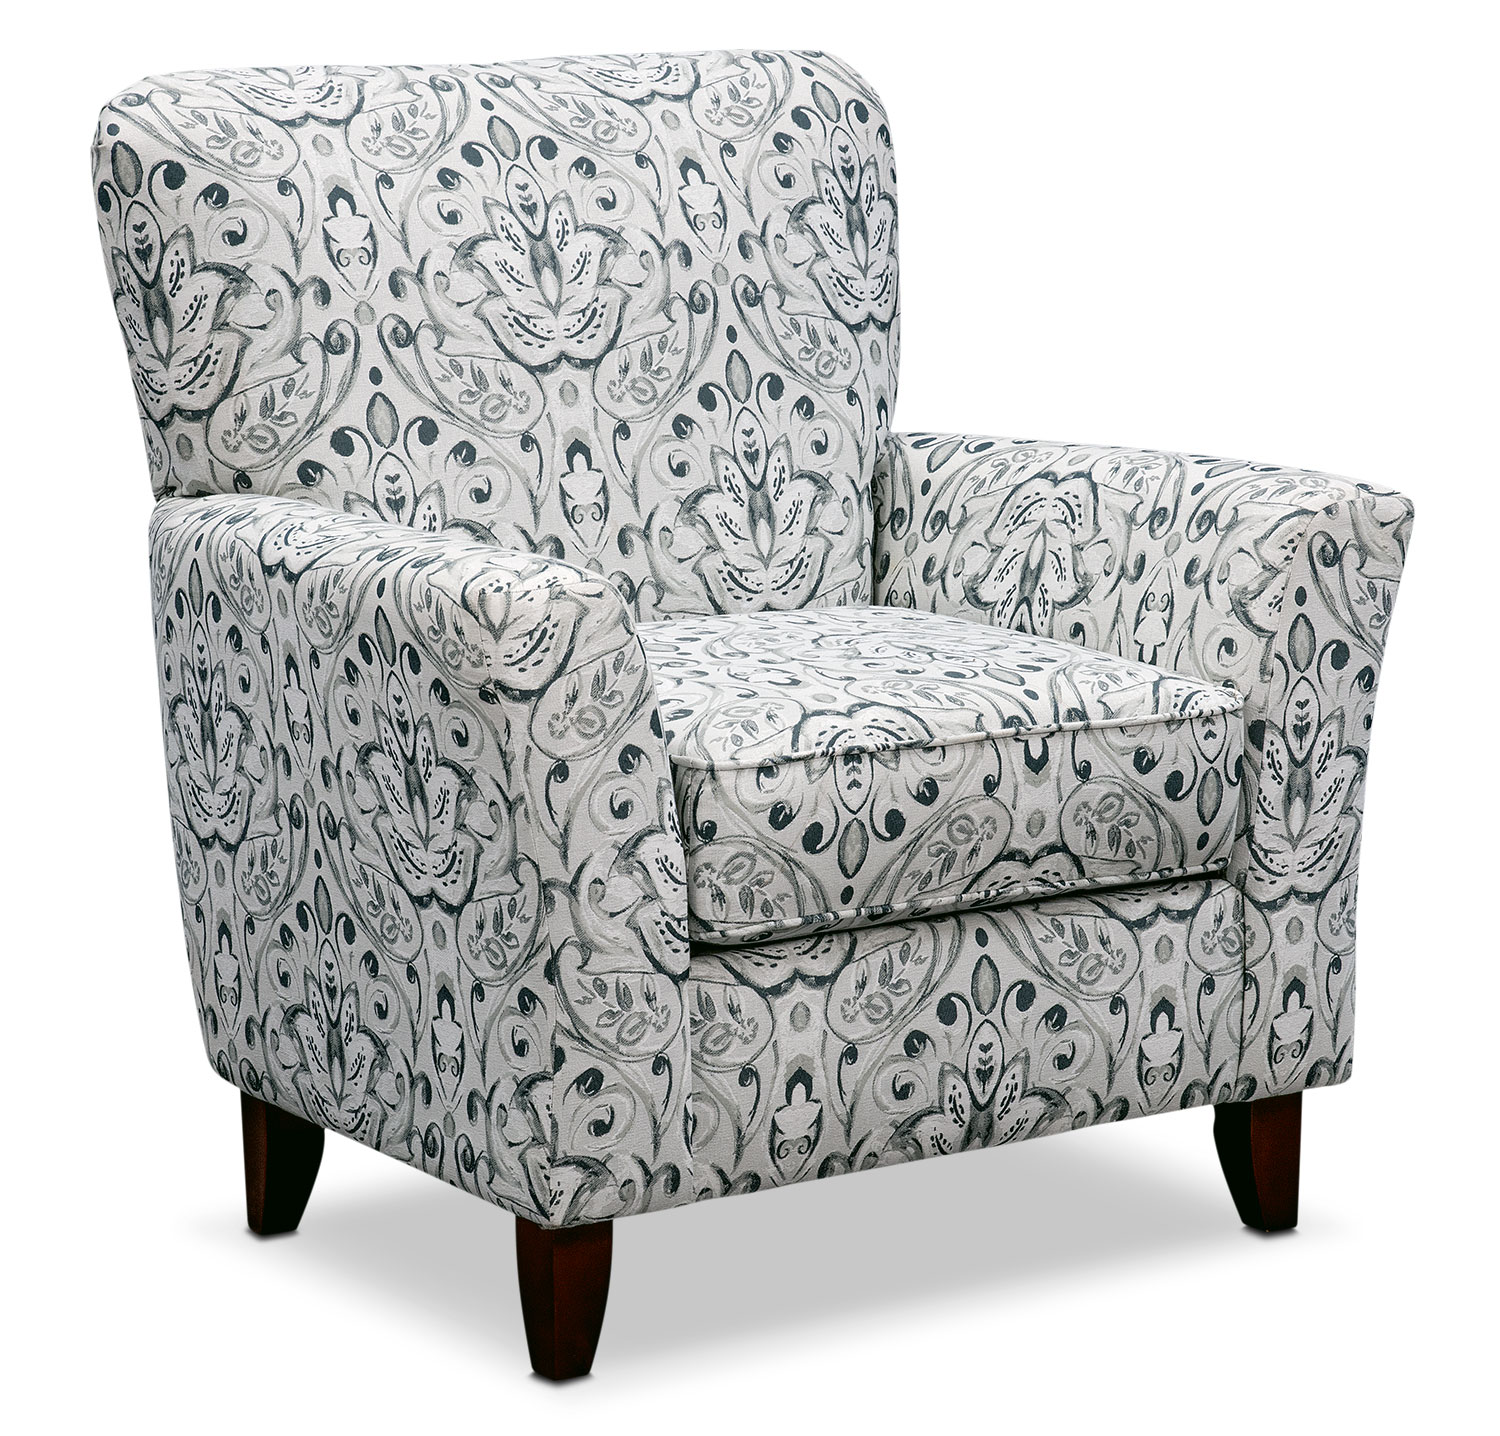 Living Room Furniture - Mckenna Accent Chair - Multi Pewter